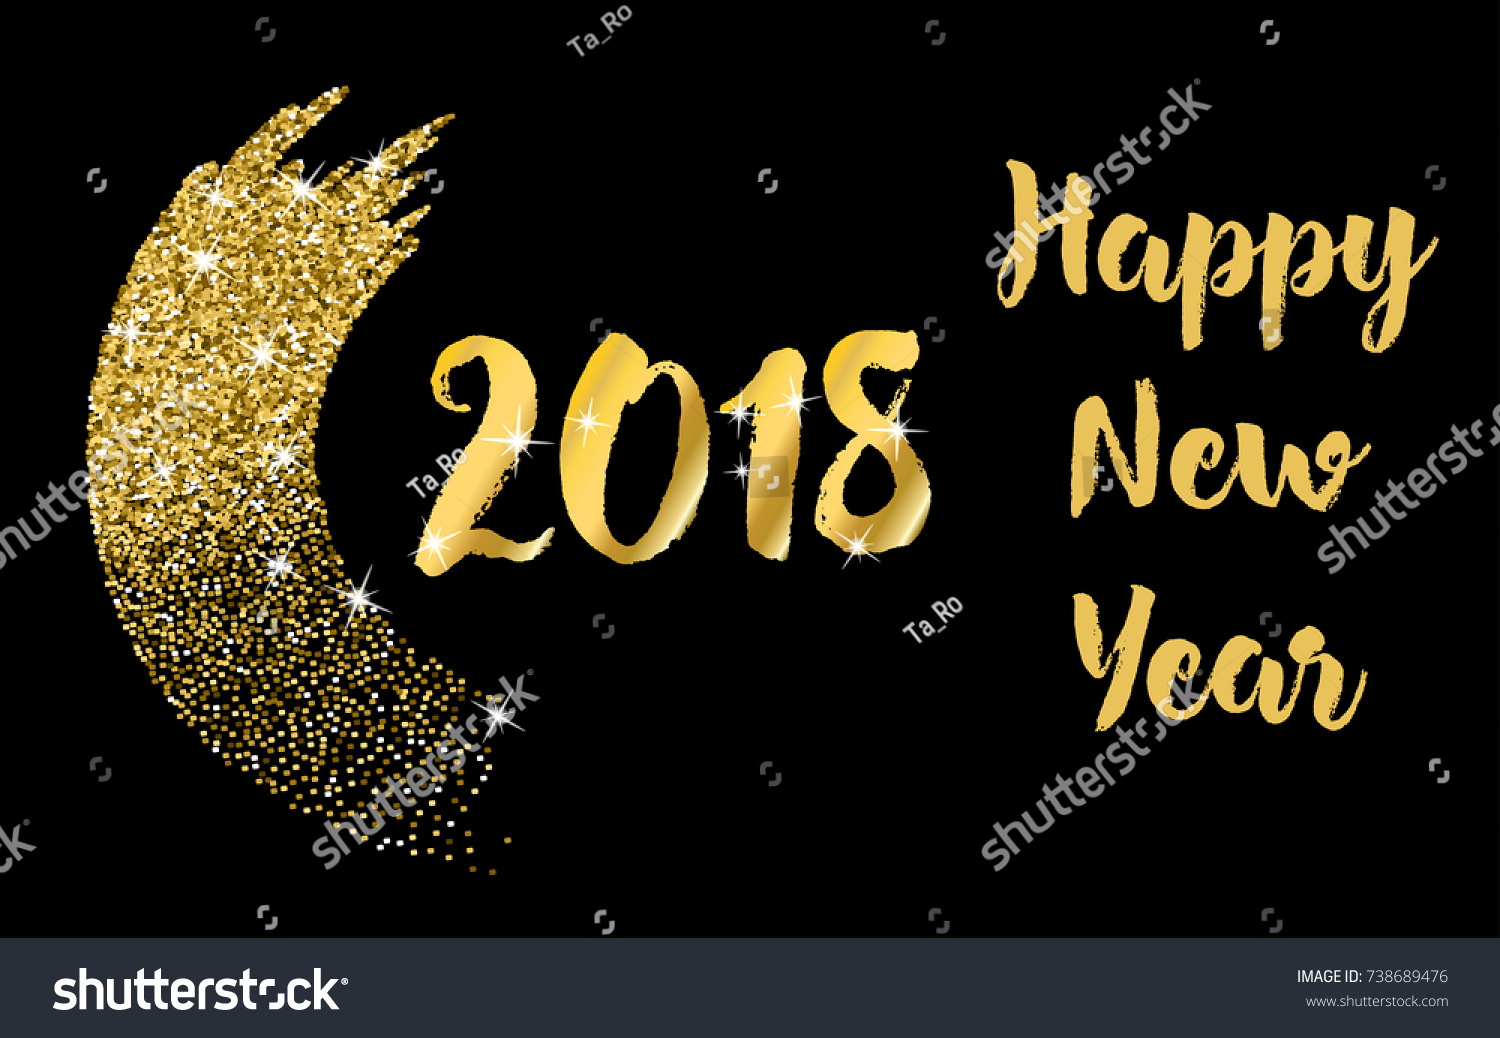 2018 happy new year lettering typography design with glitter brush stroke on a black background